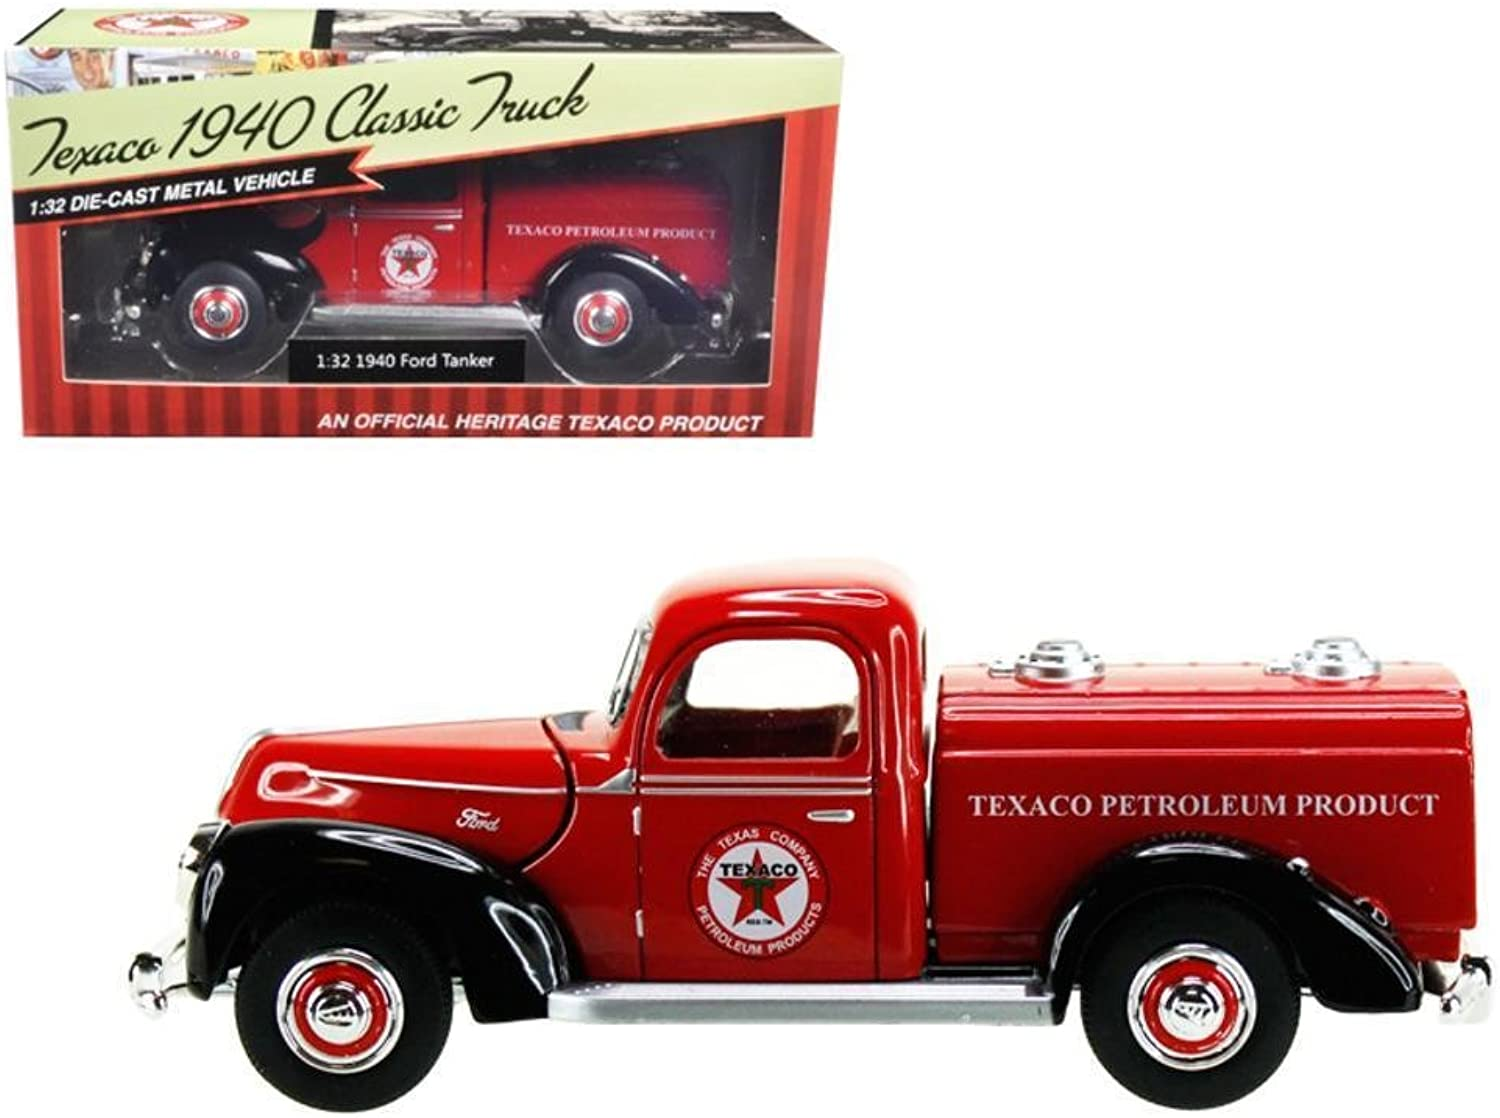 Beyond The Infinity 1940 Ford Tanker \Texaco\ red 1 32 Druckguss Modellauto